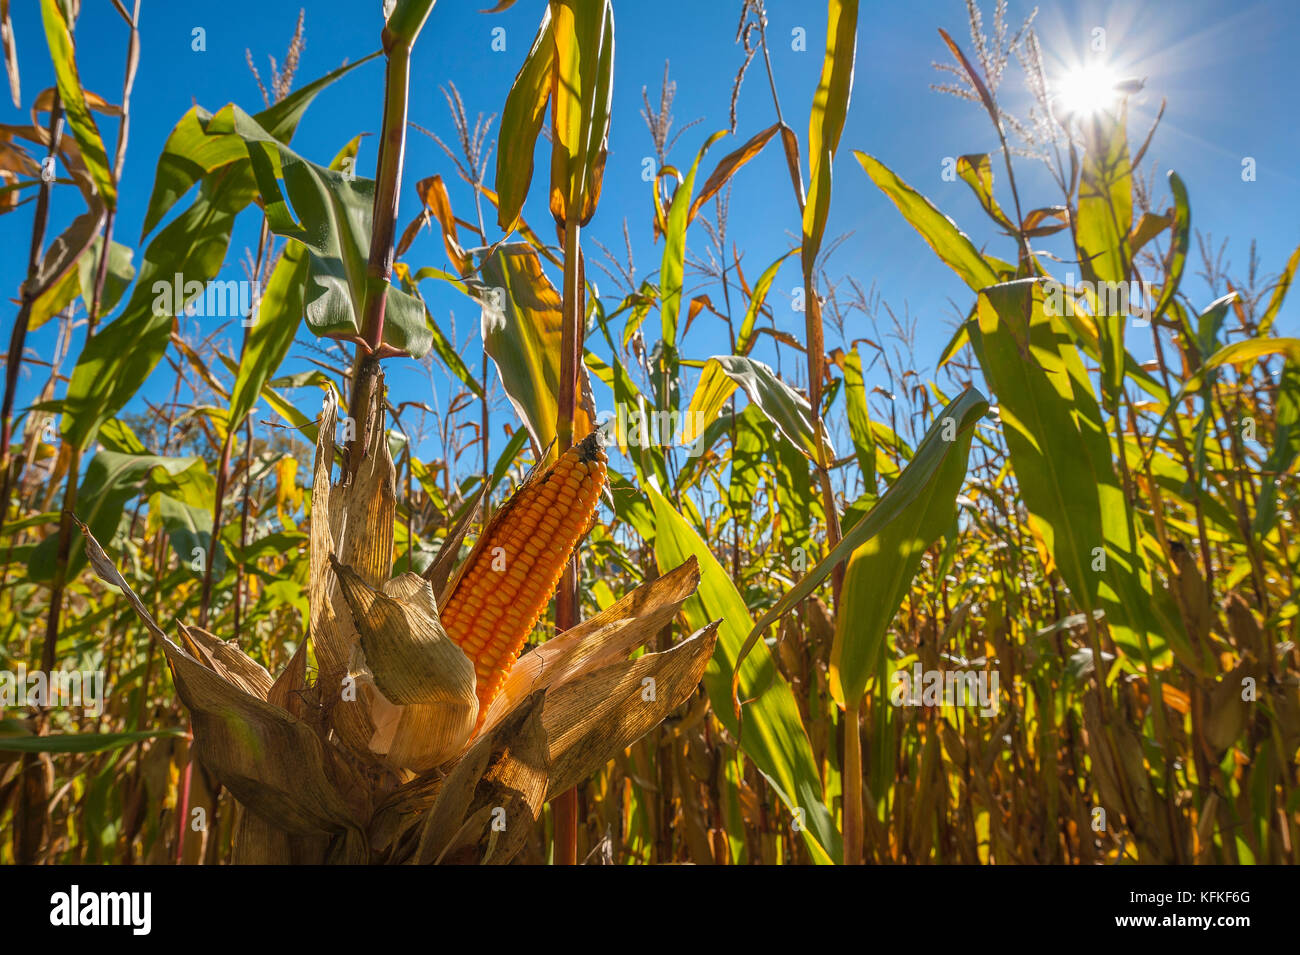 Cultivation of fodder maize, yellow piston (Zea mays) also , Oberbayern, Bavaria, Germany - Stock Image